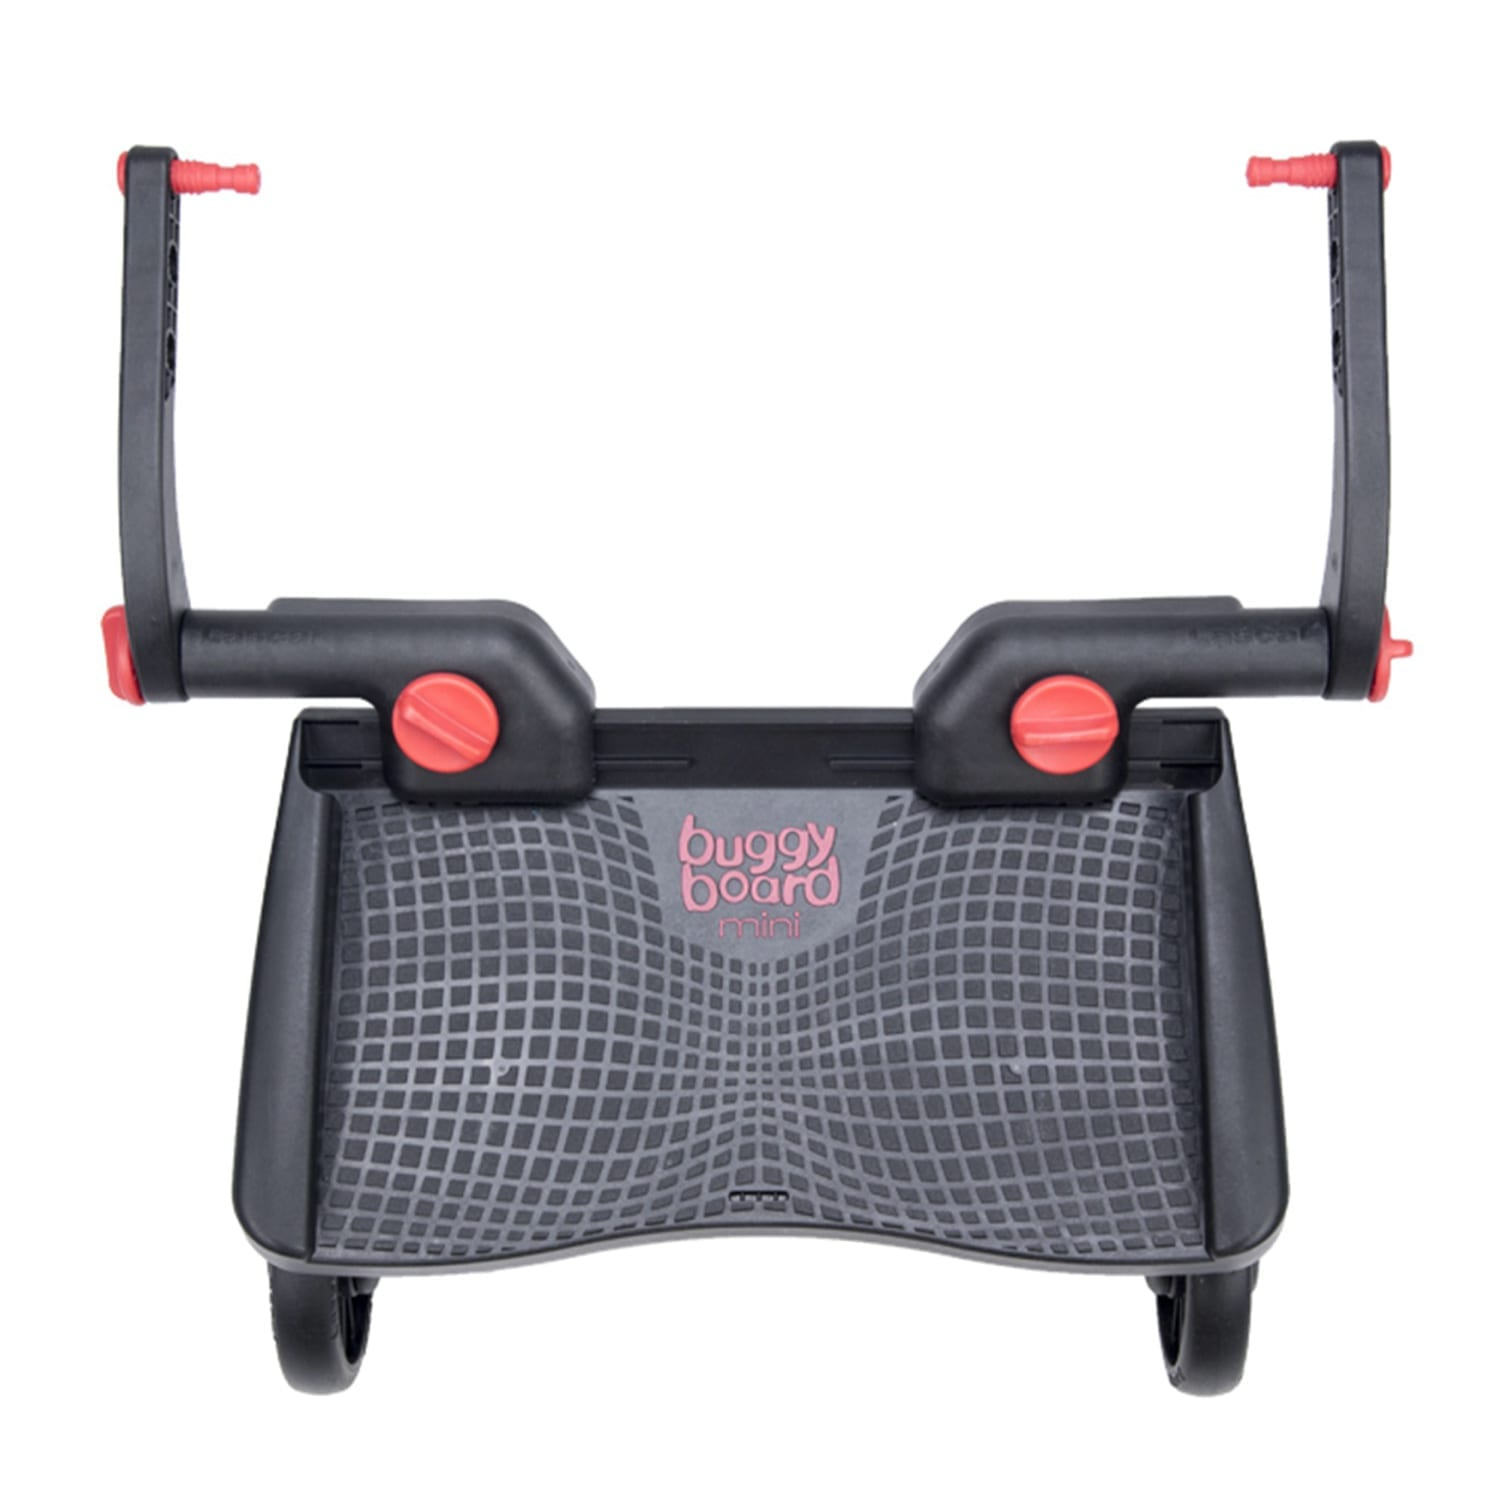 Lascal Mini Buggy Board/3D Red product image